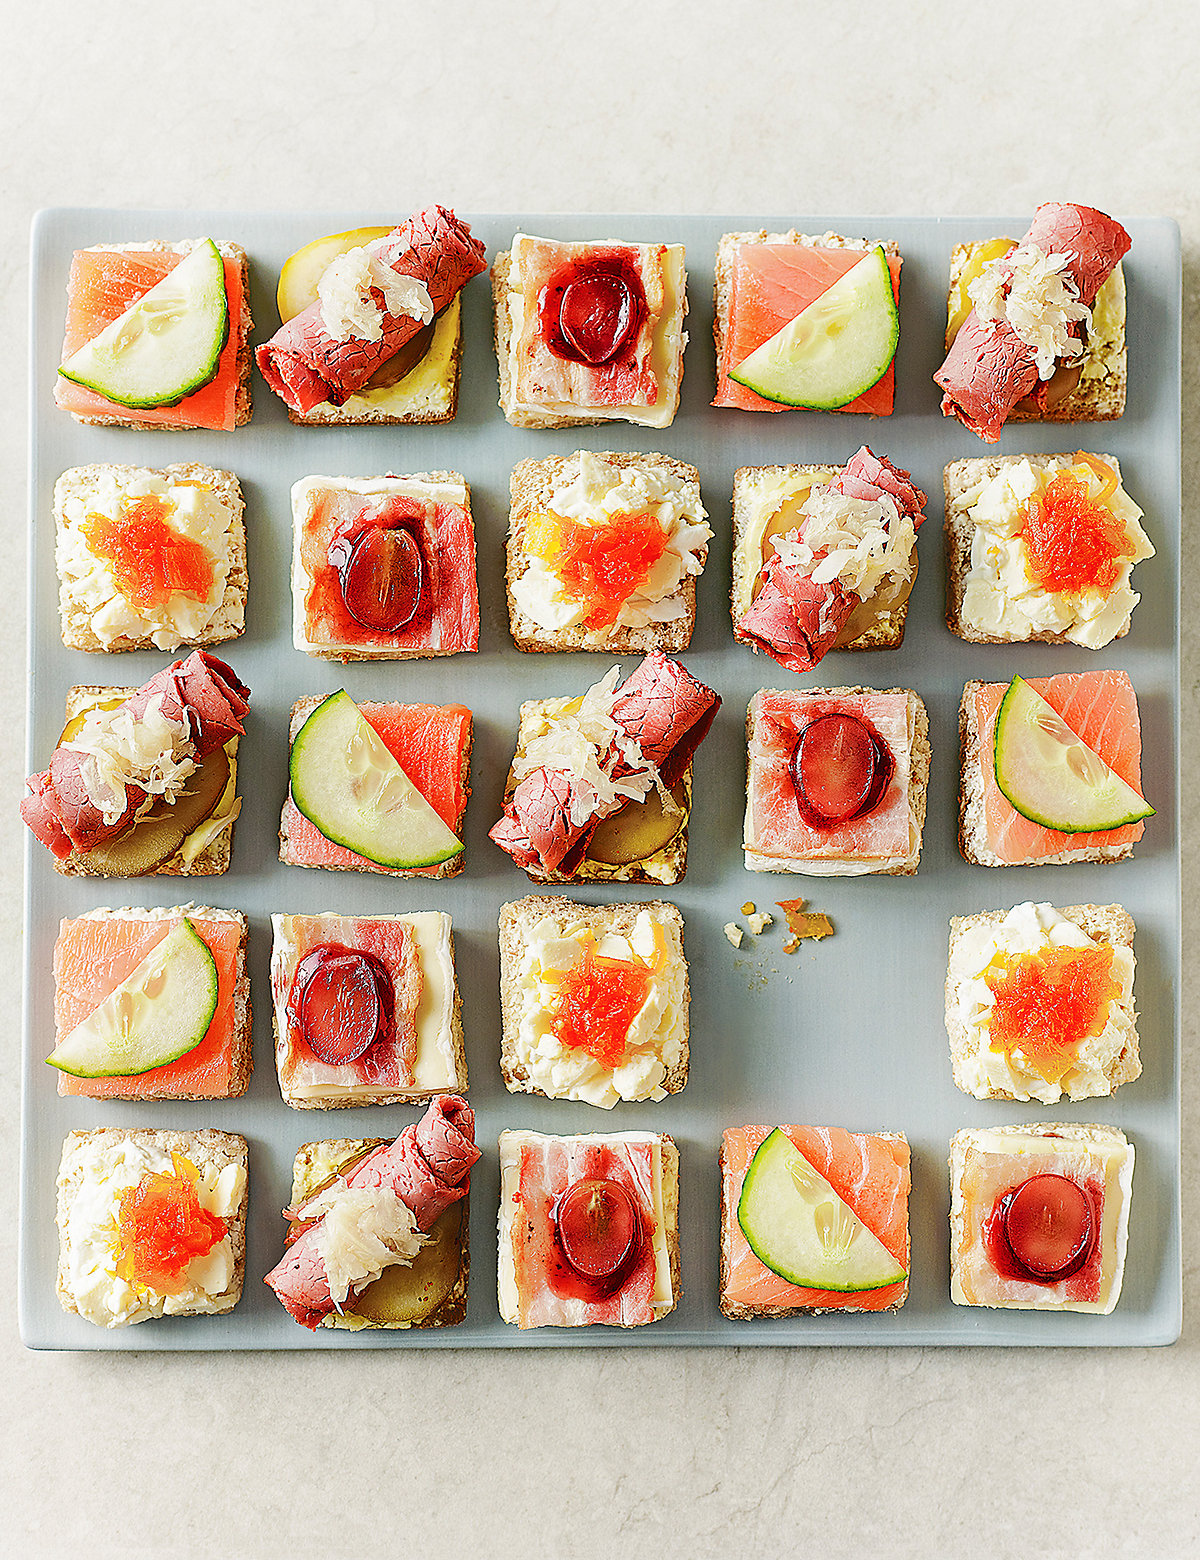 Marks and spencer luxury canape selection 24 pieces for Canape selection